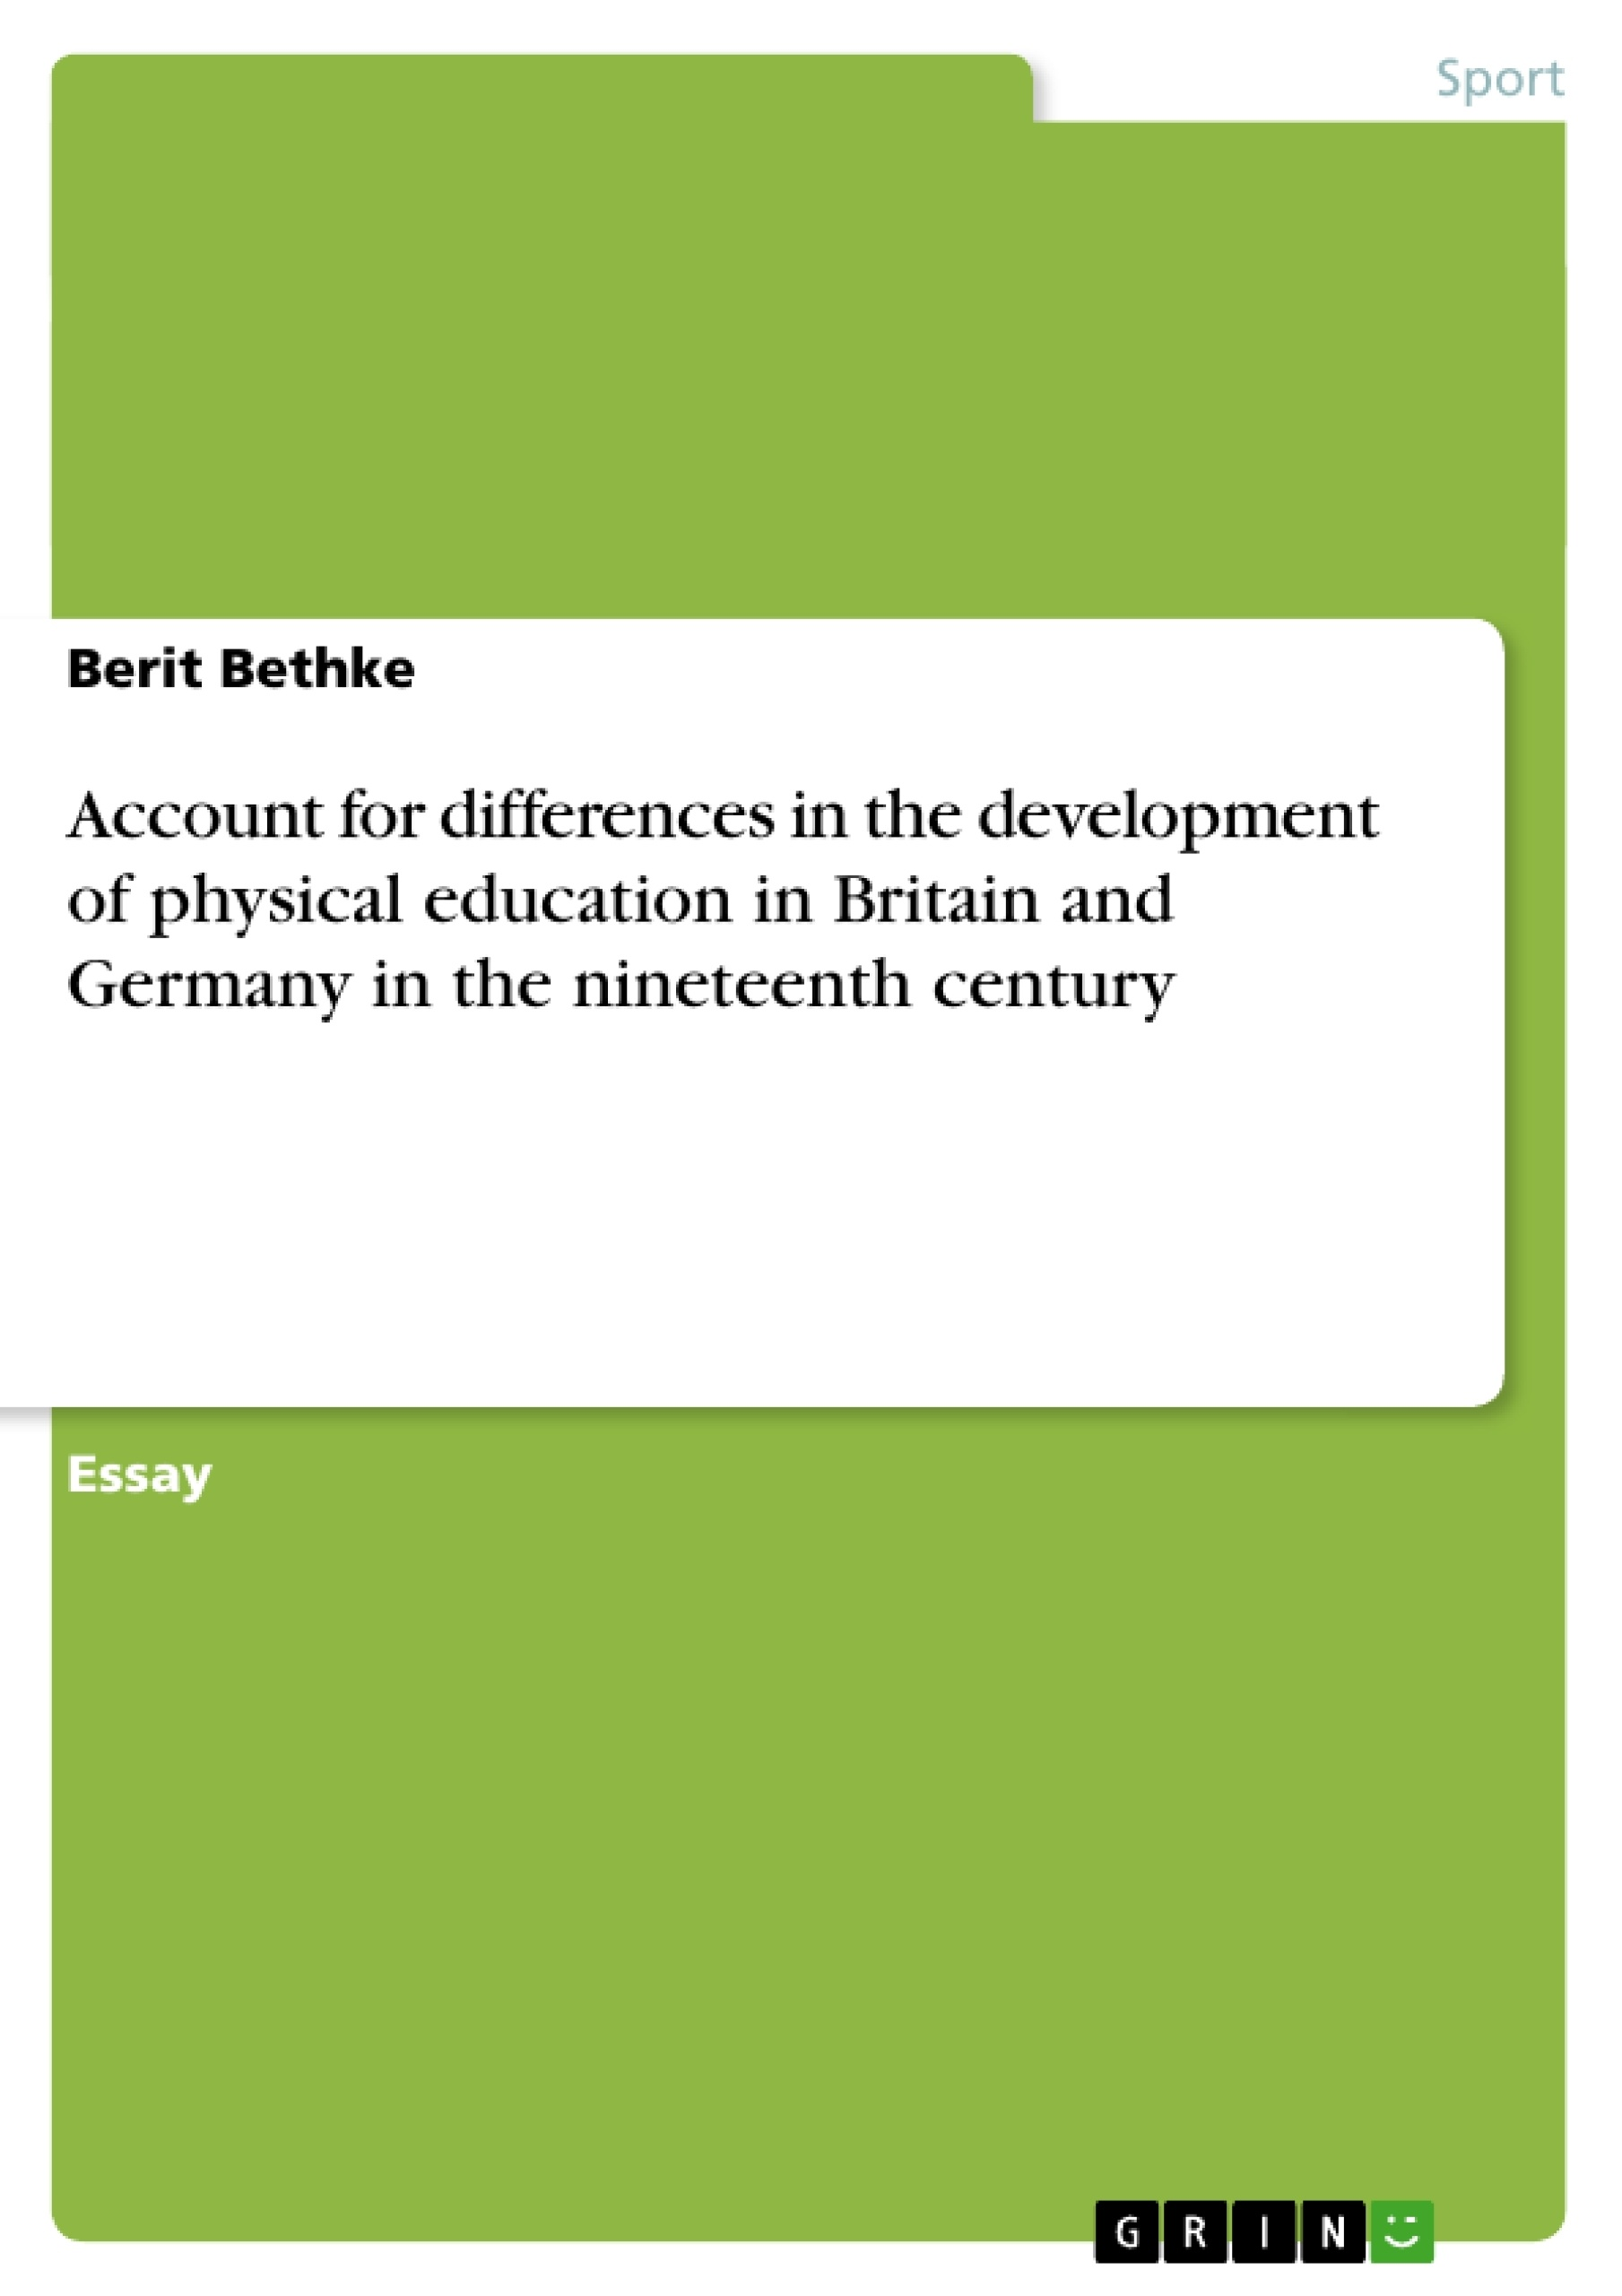 Title: Account for differences in the development of physical education in Britain and Germany in the nineteenth century